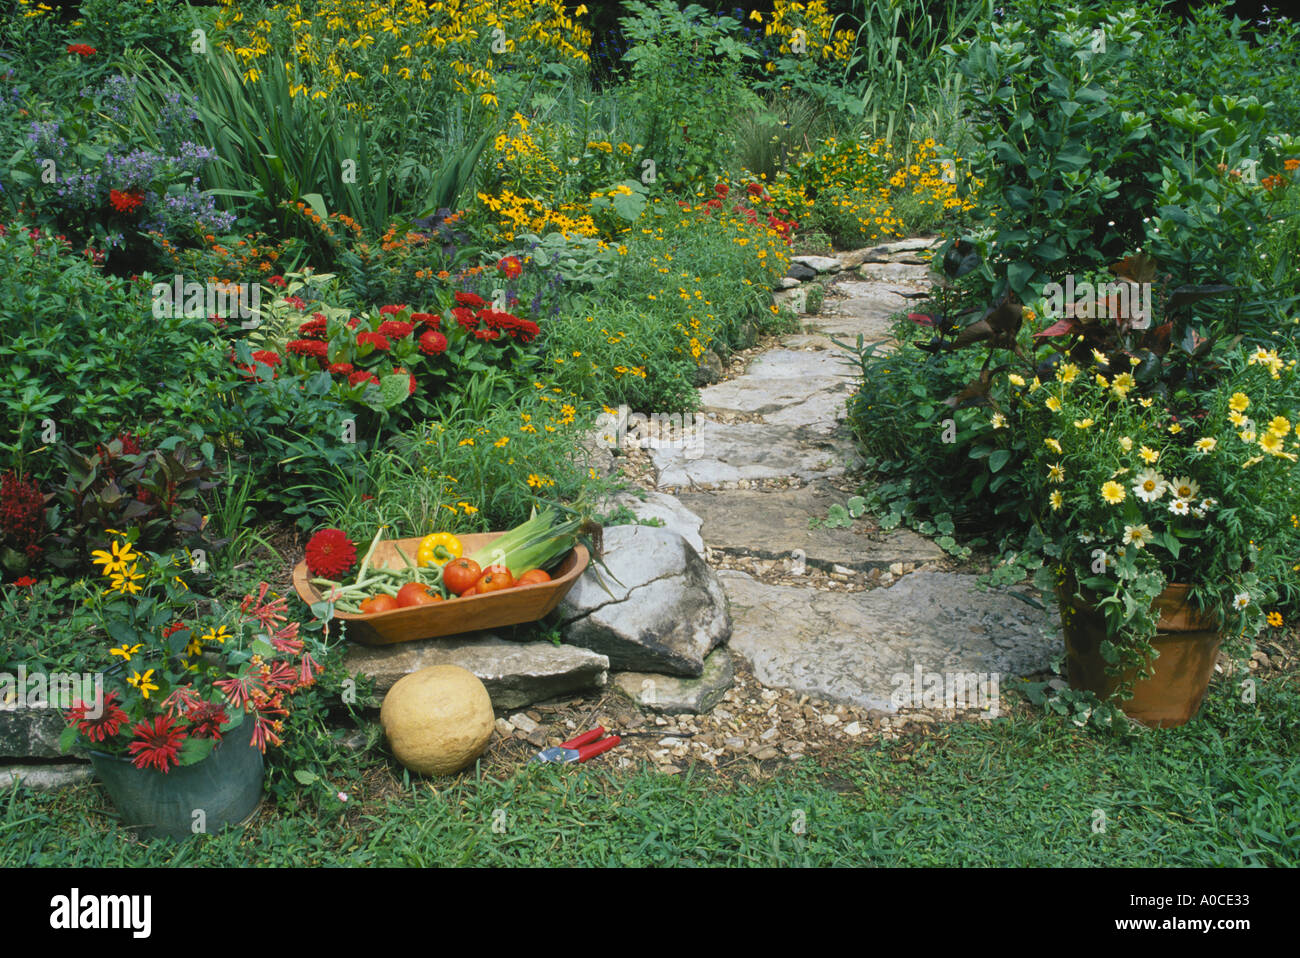 Stone Path In Home Garden Through Vegetable And Flower Garden With